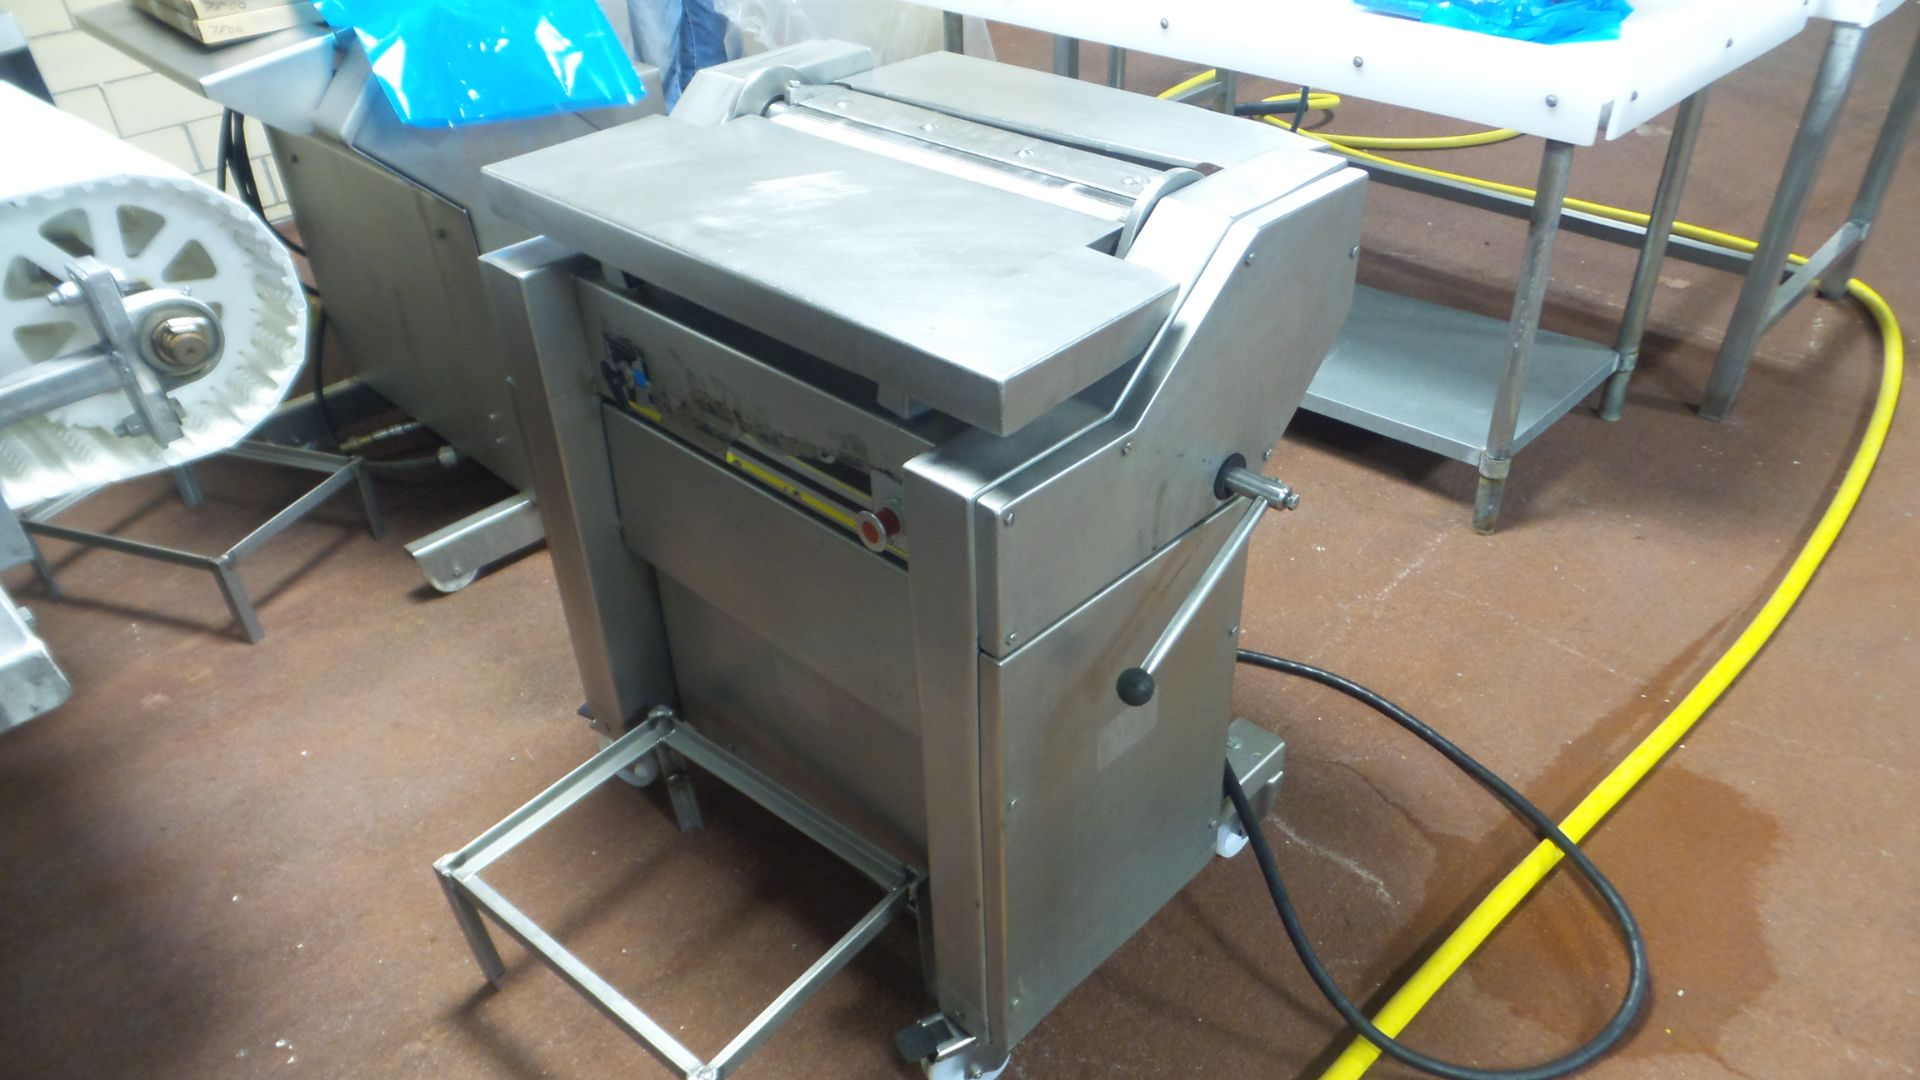 Lot 5 - Townsend;Mdl. 7500 Membrane Skinner, w/air assist, 220 volt, 3 phase;*** All Funds Must Be